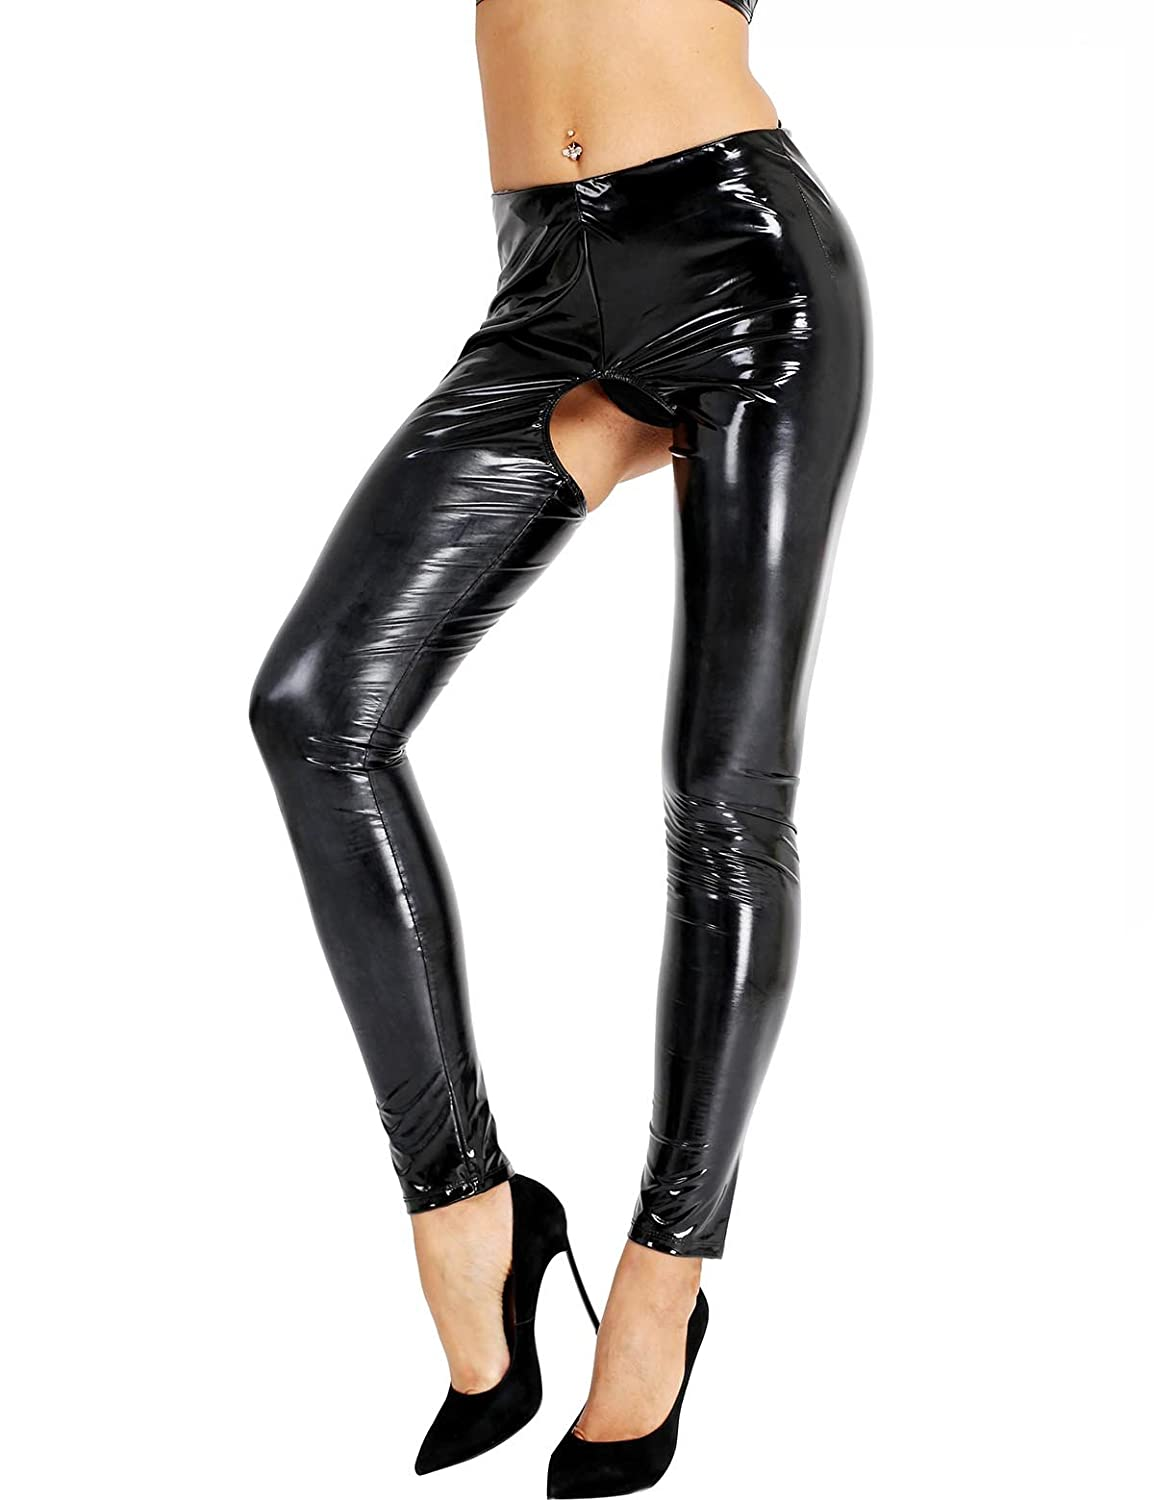 iixpin Damen Wetlook Leggings Stretch PU Lederhose Glänzend Ouvert-Hose Kunstleder Slim Schwarz Smooth Hose S-XL